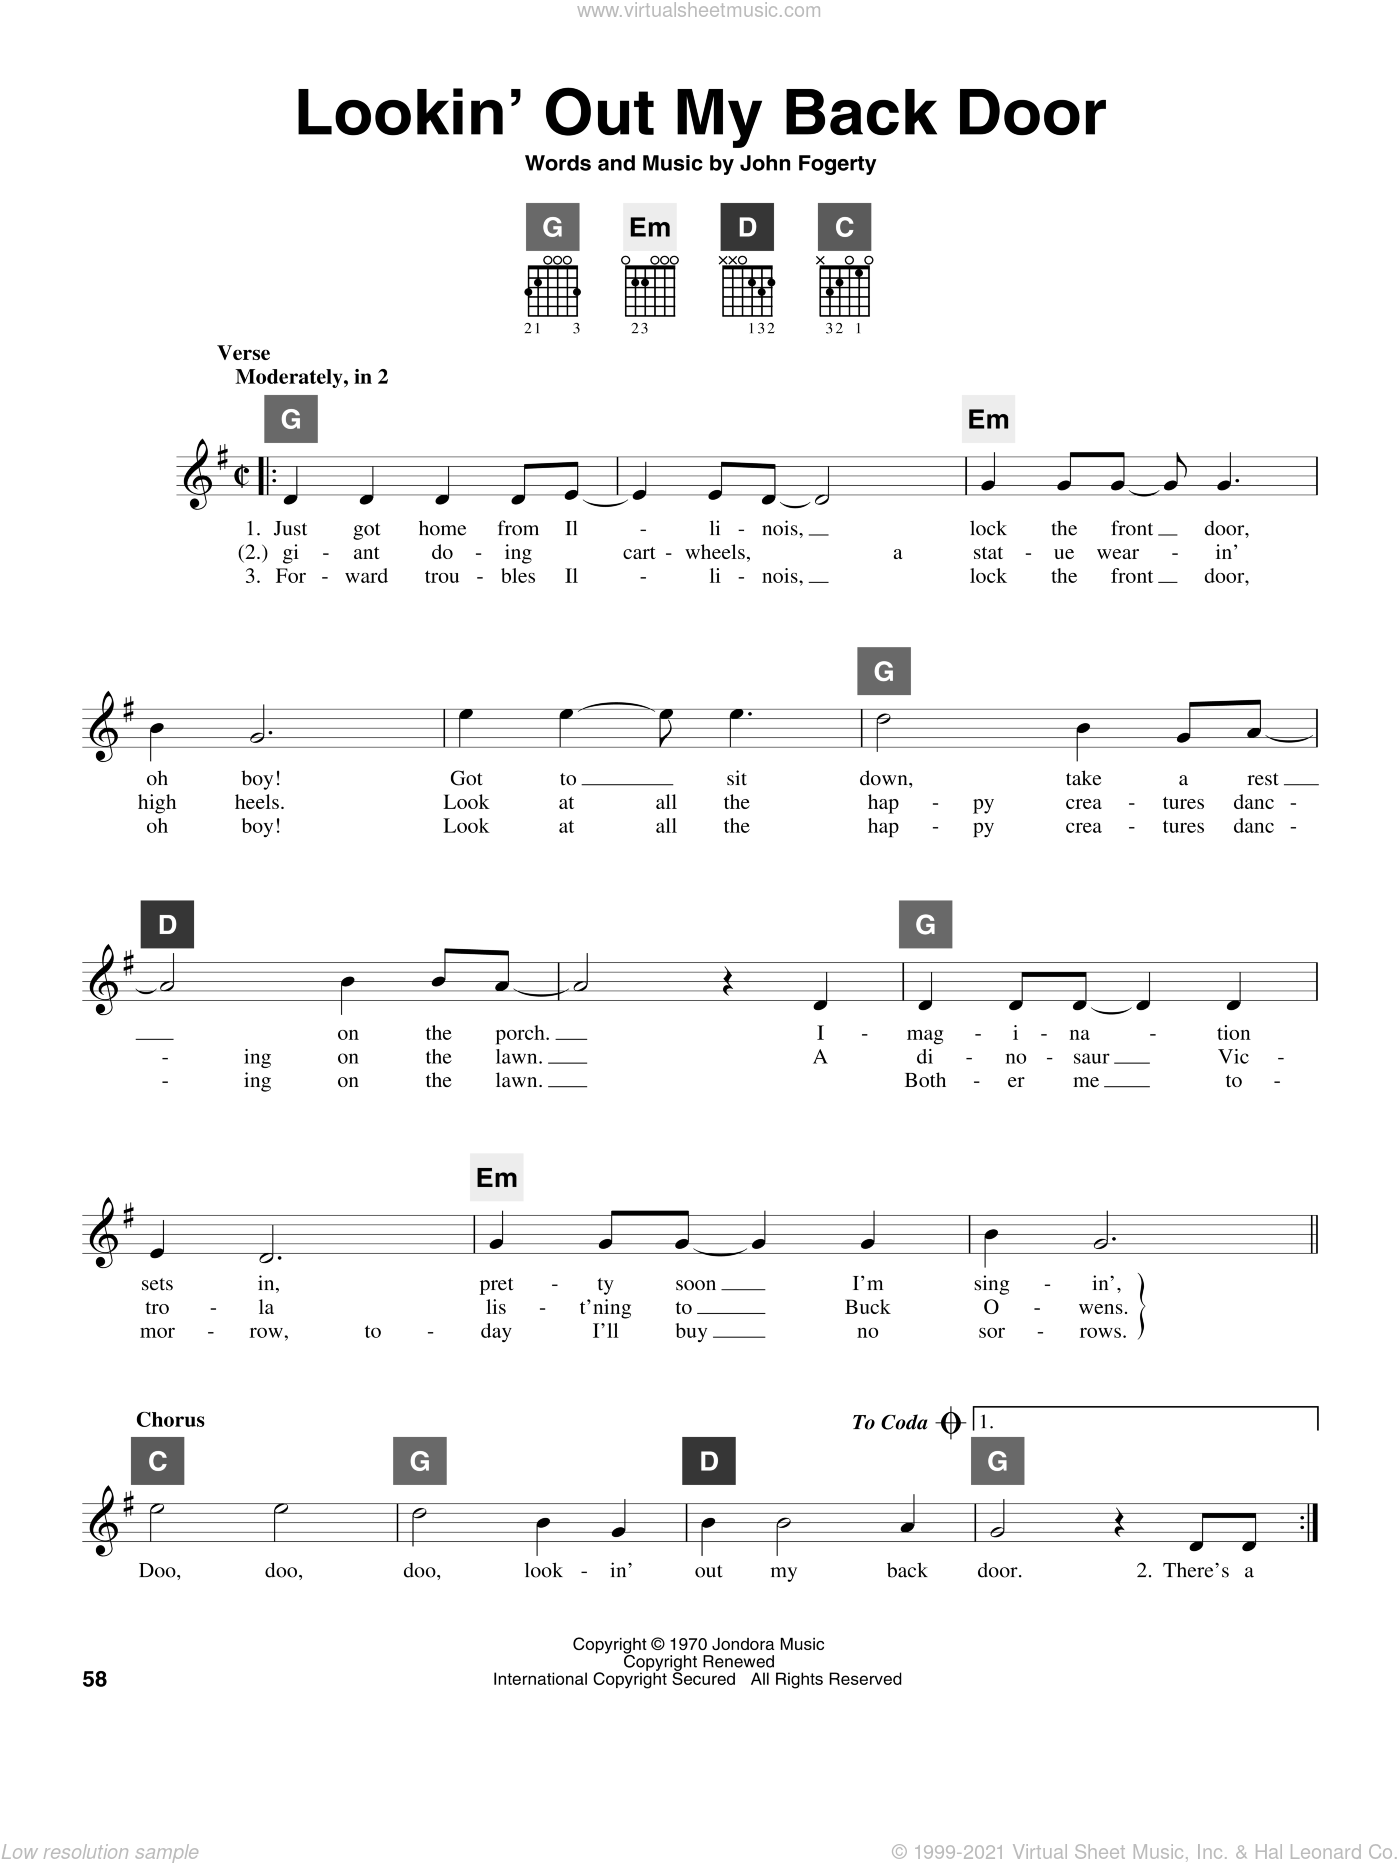 Lookin' Out My Back Door sheet music for guitar solo (ChordBuddy system) by Creedence Clearwater Revival and John Fogerty, intermediate guitar (ChordBuddy system). Score Image Preview.